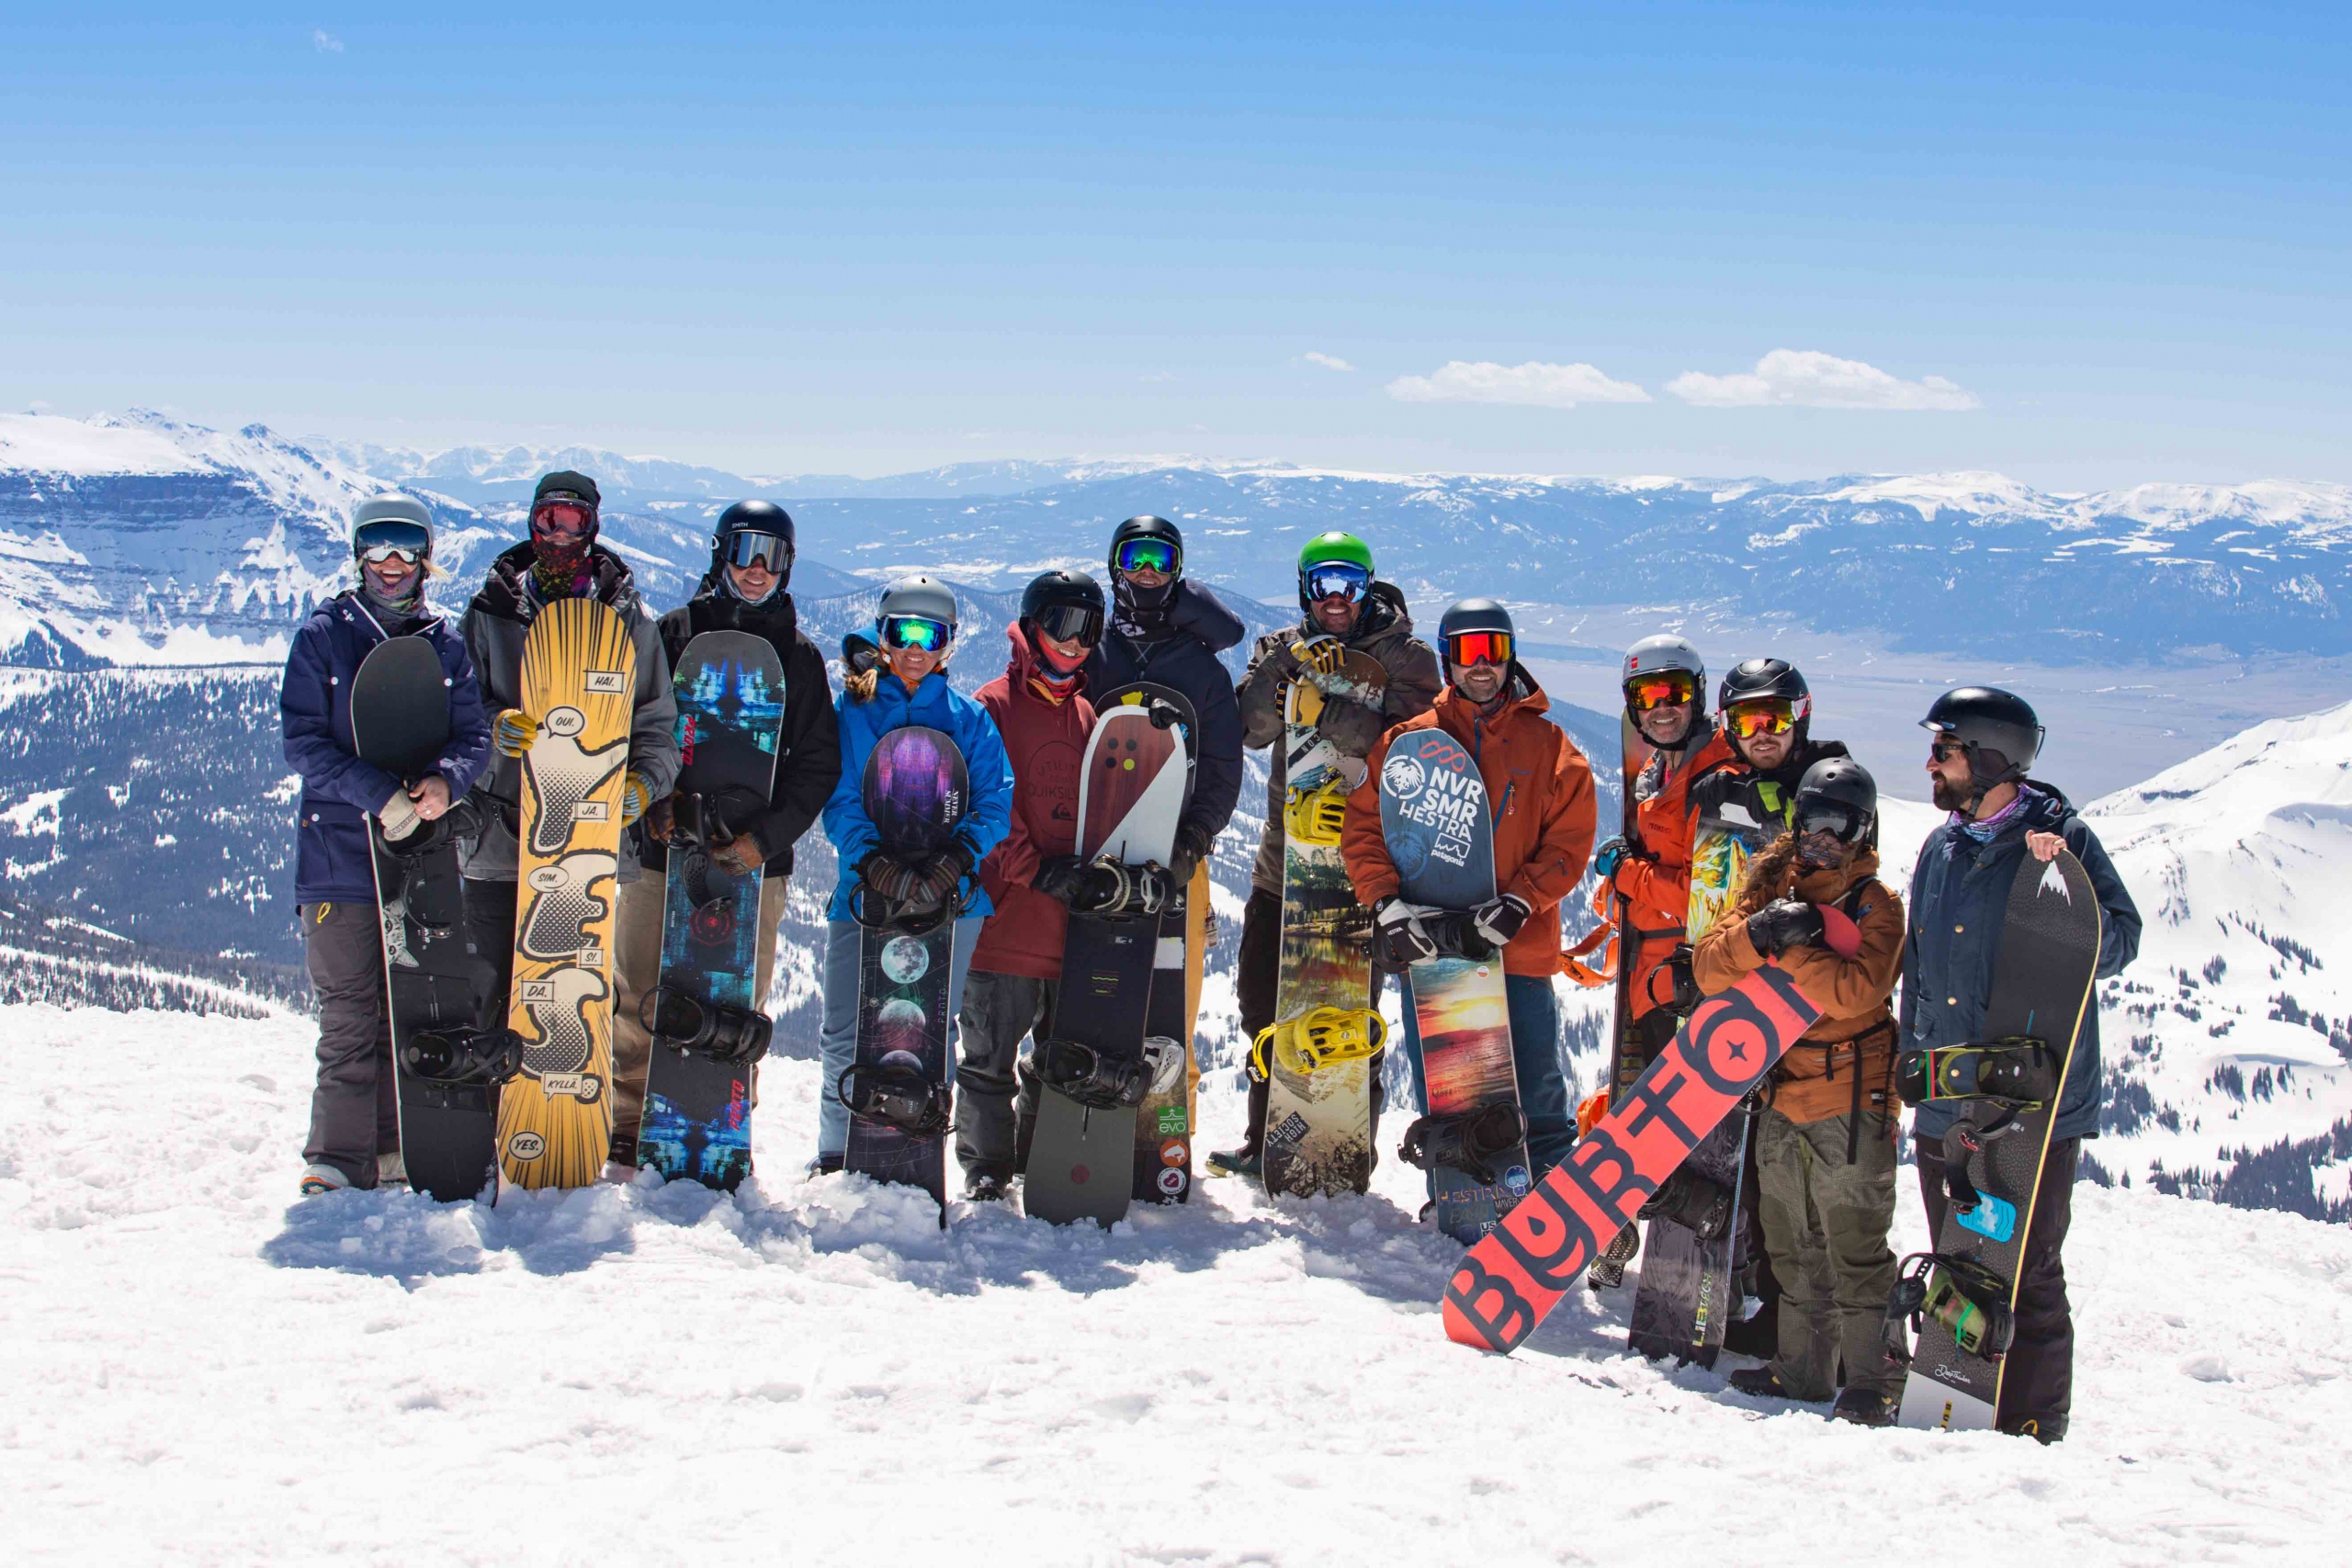 Snowboarders at Rider Rally 2019